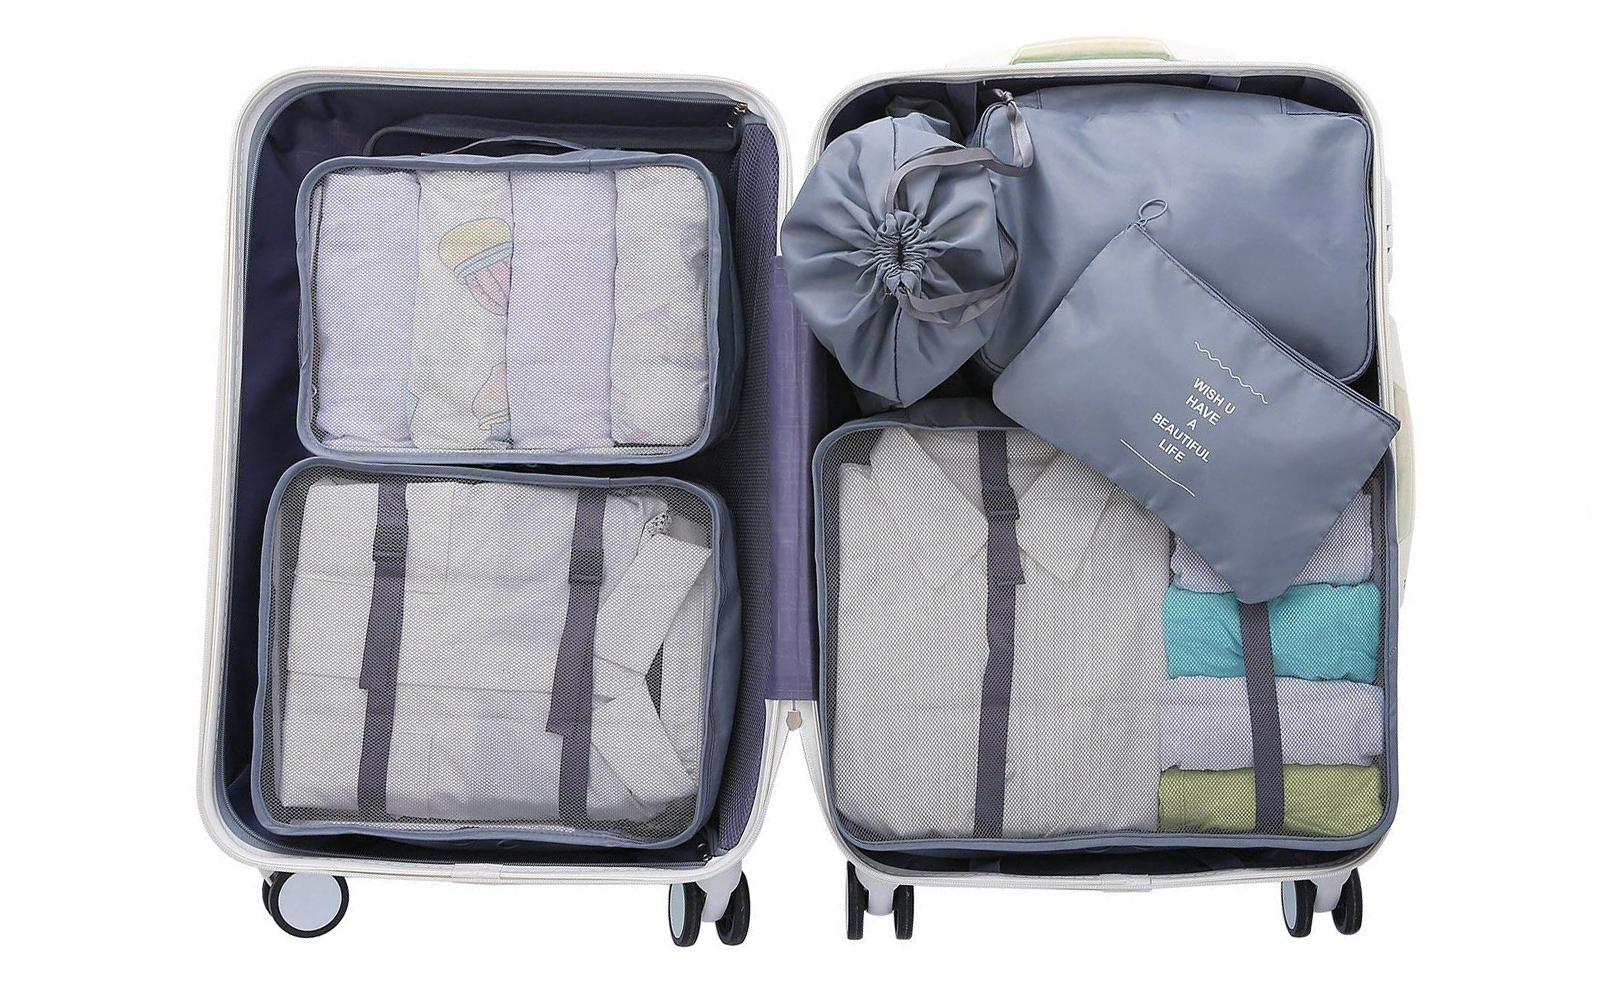 The Best Travel Packing Organizers on Amazon